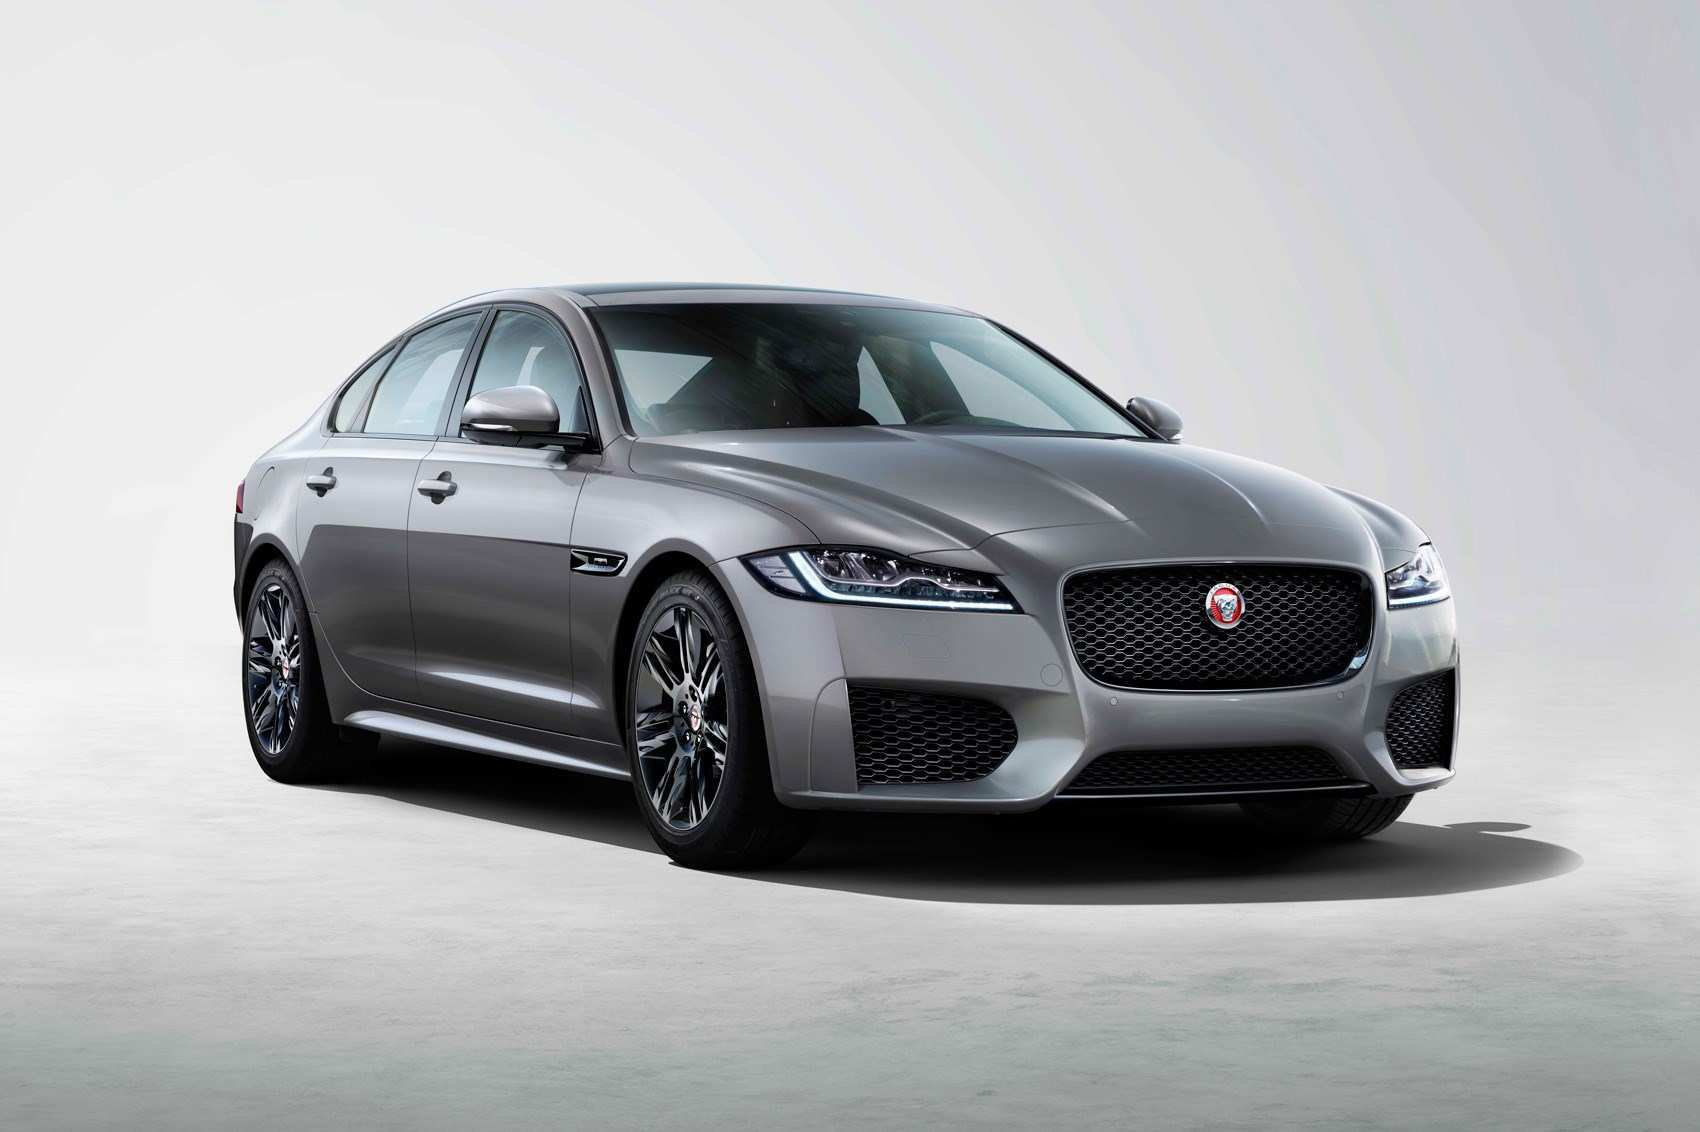 69 The Best 2019 Jaguar XF First Drive